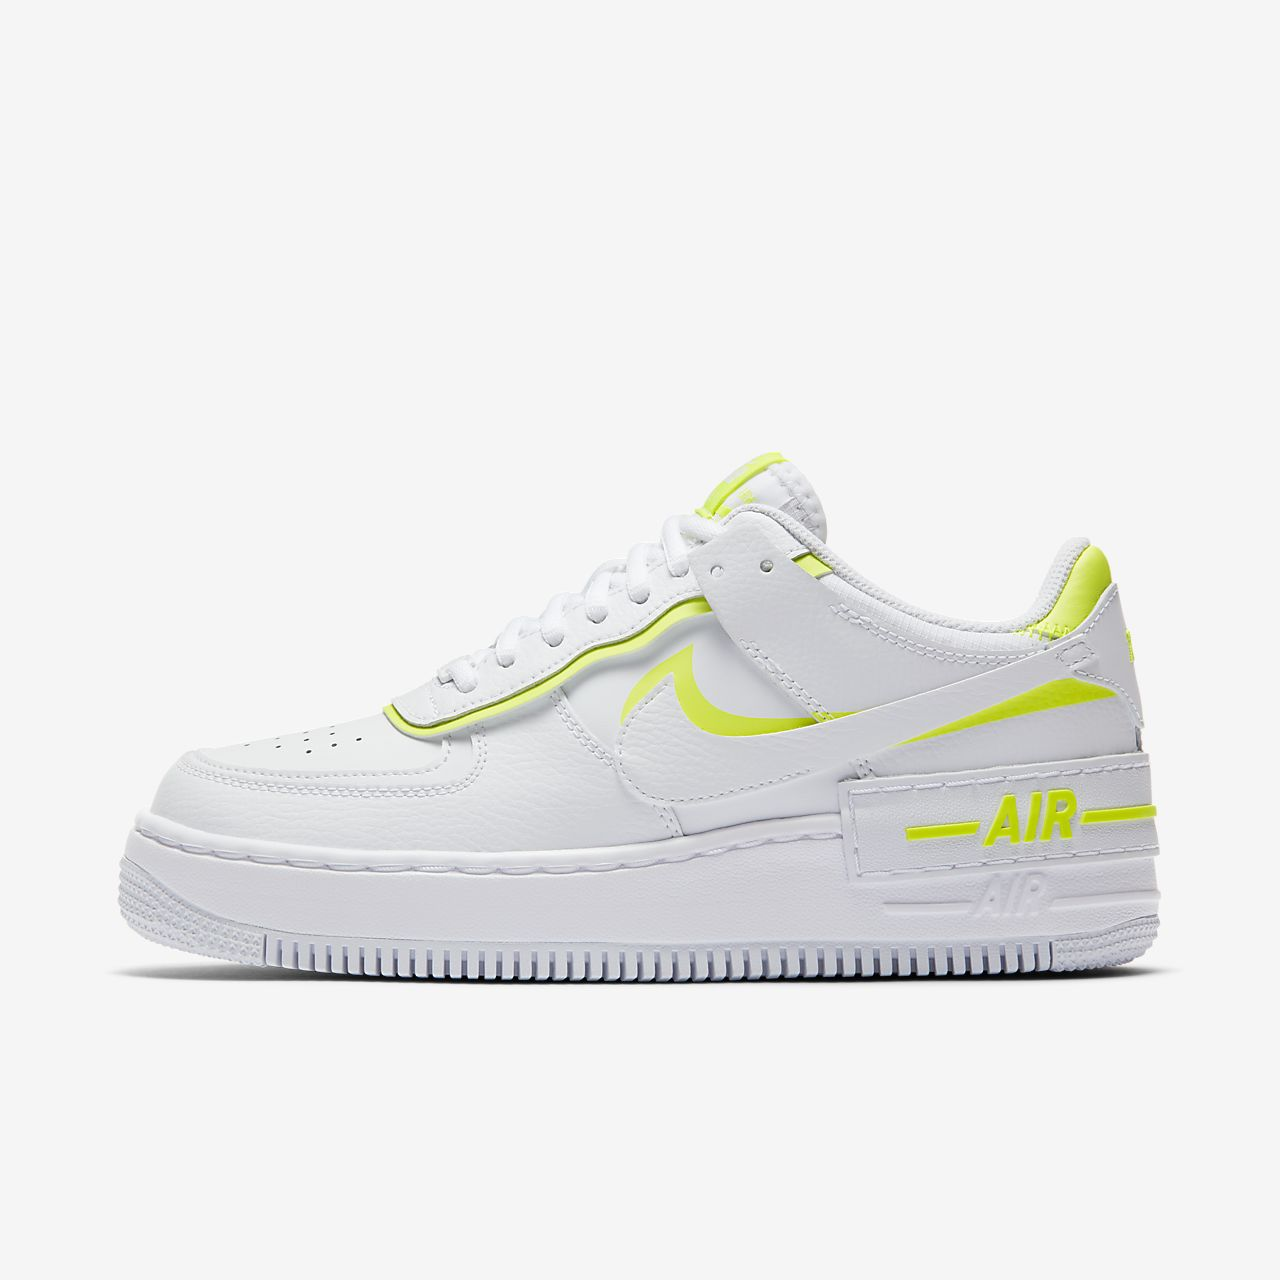 air force one nike blanche femme